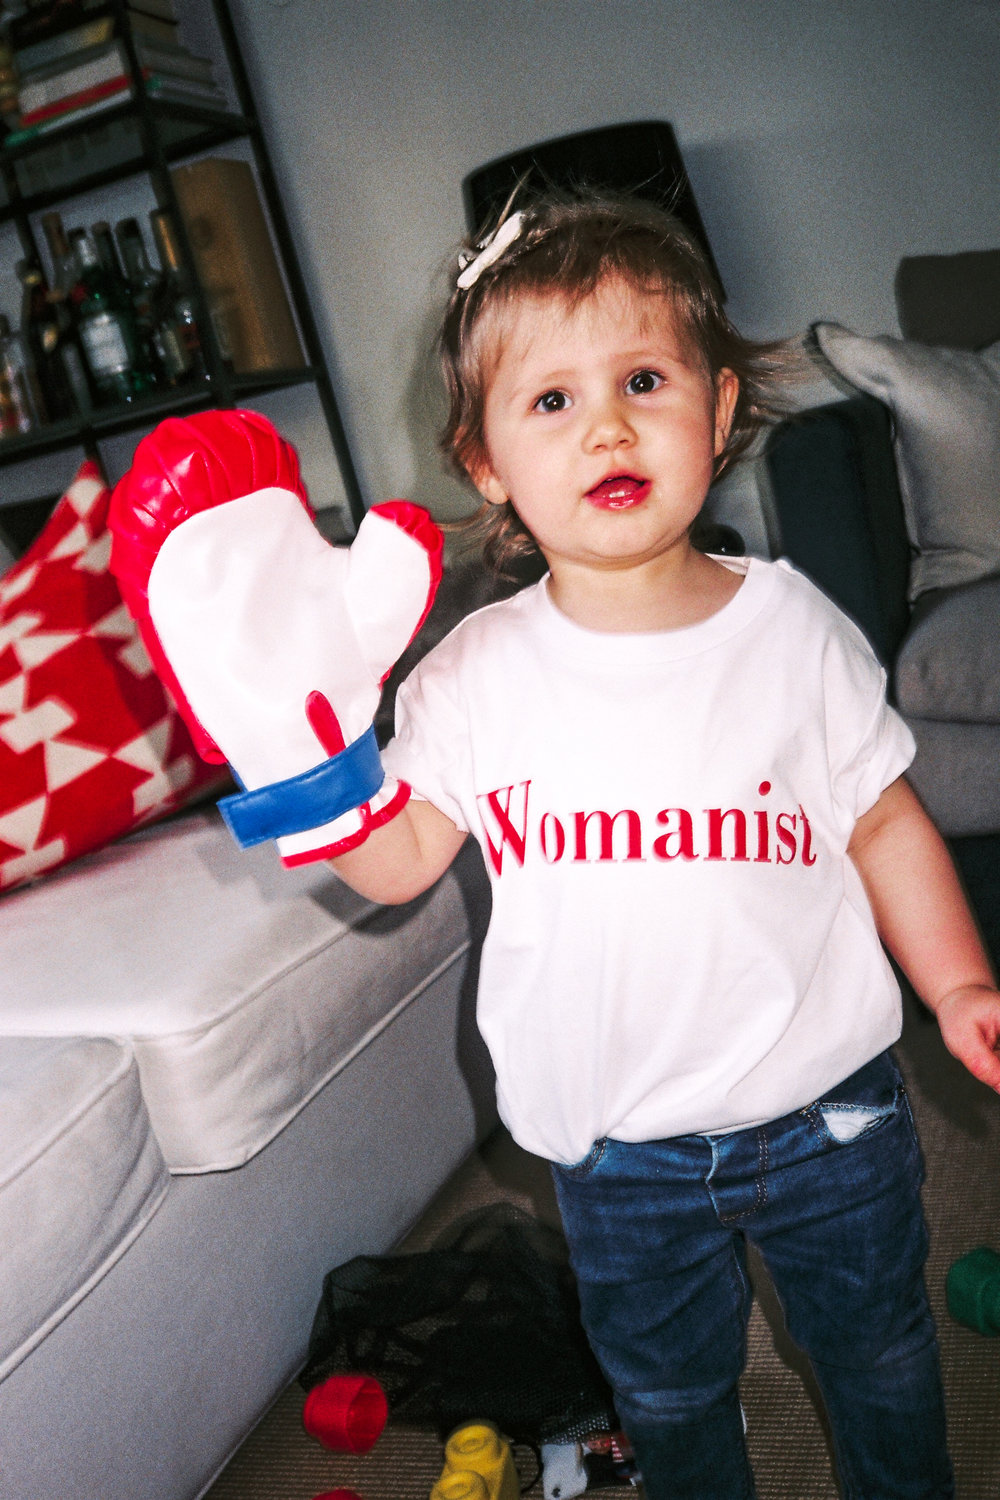 Téodora Rummo , 1 year 8 months is wearing the Womanist Tee Shirt in size 3 years.   At home,  Milano, 16th of May 2017.